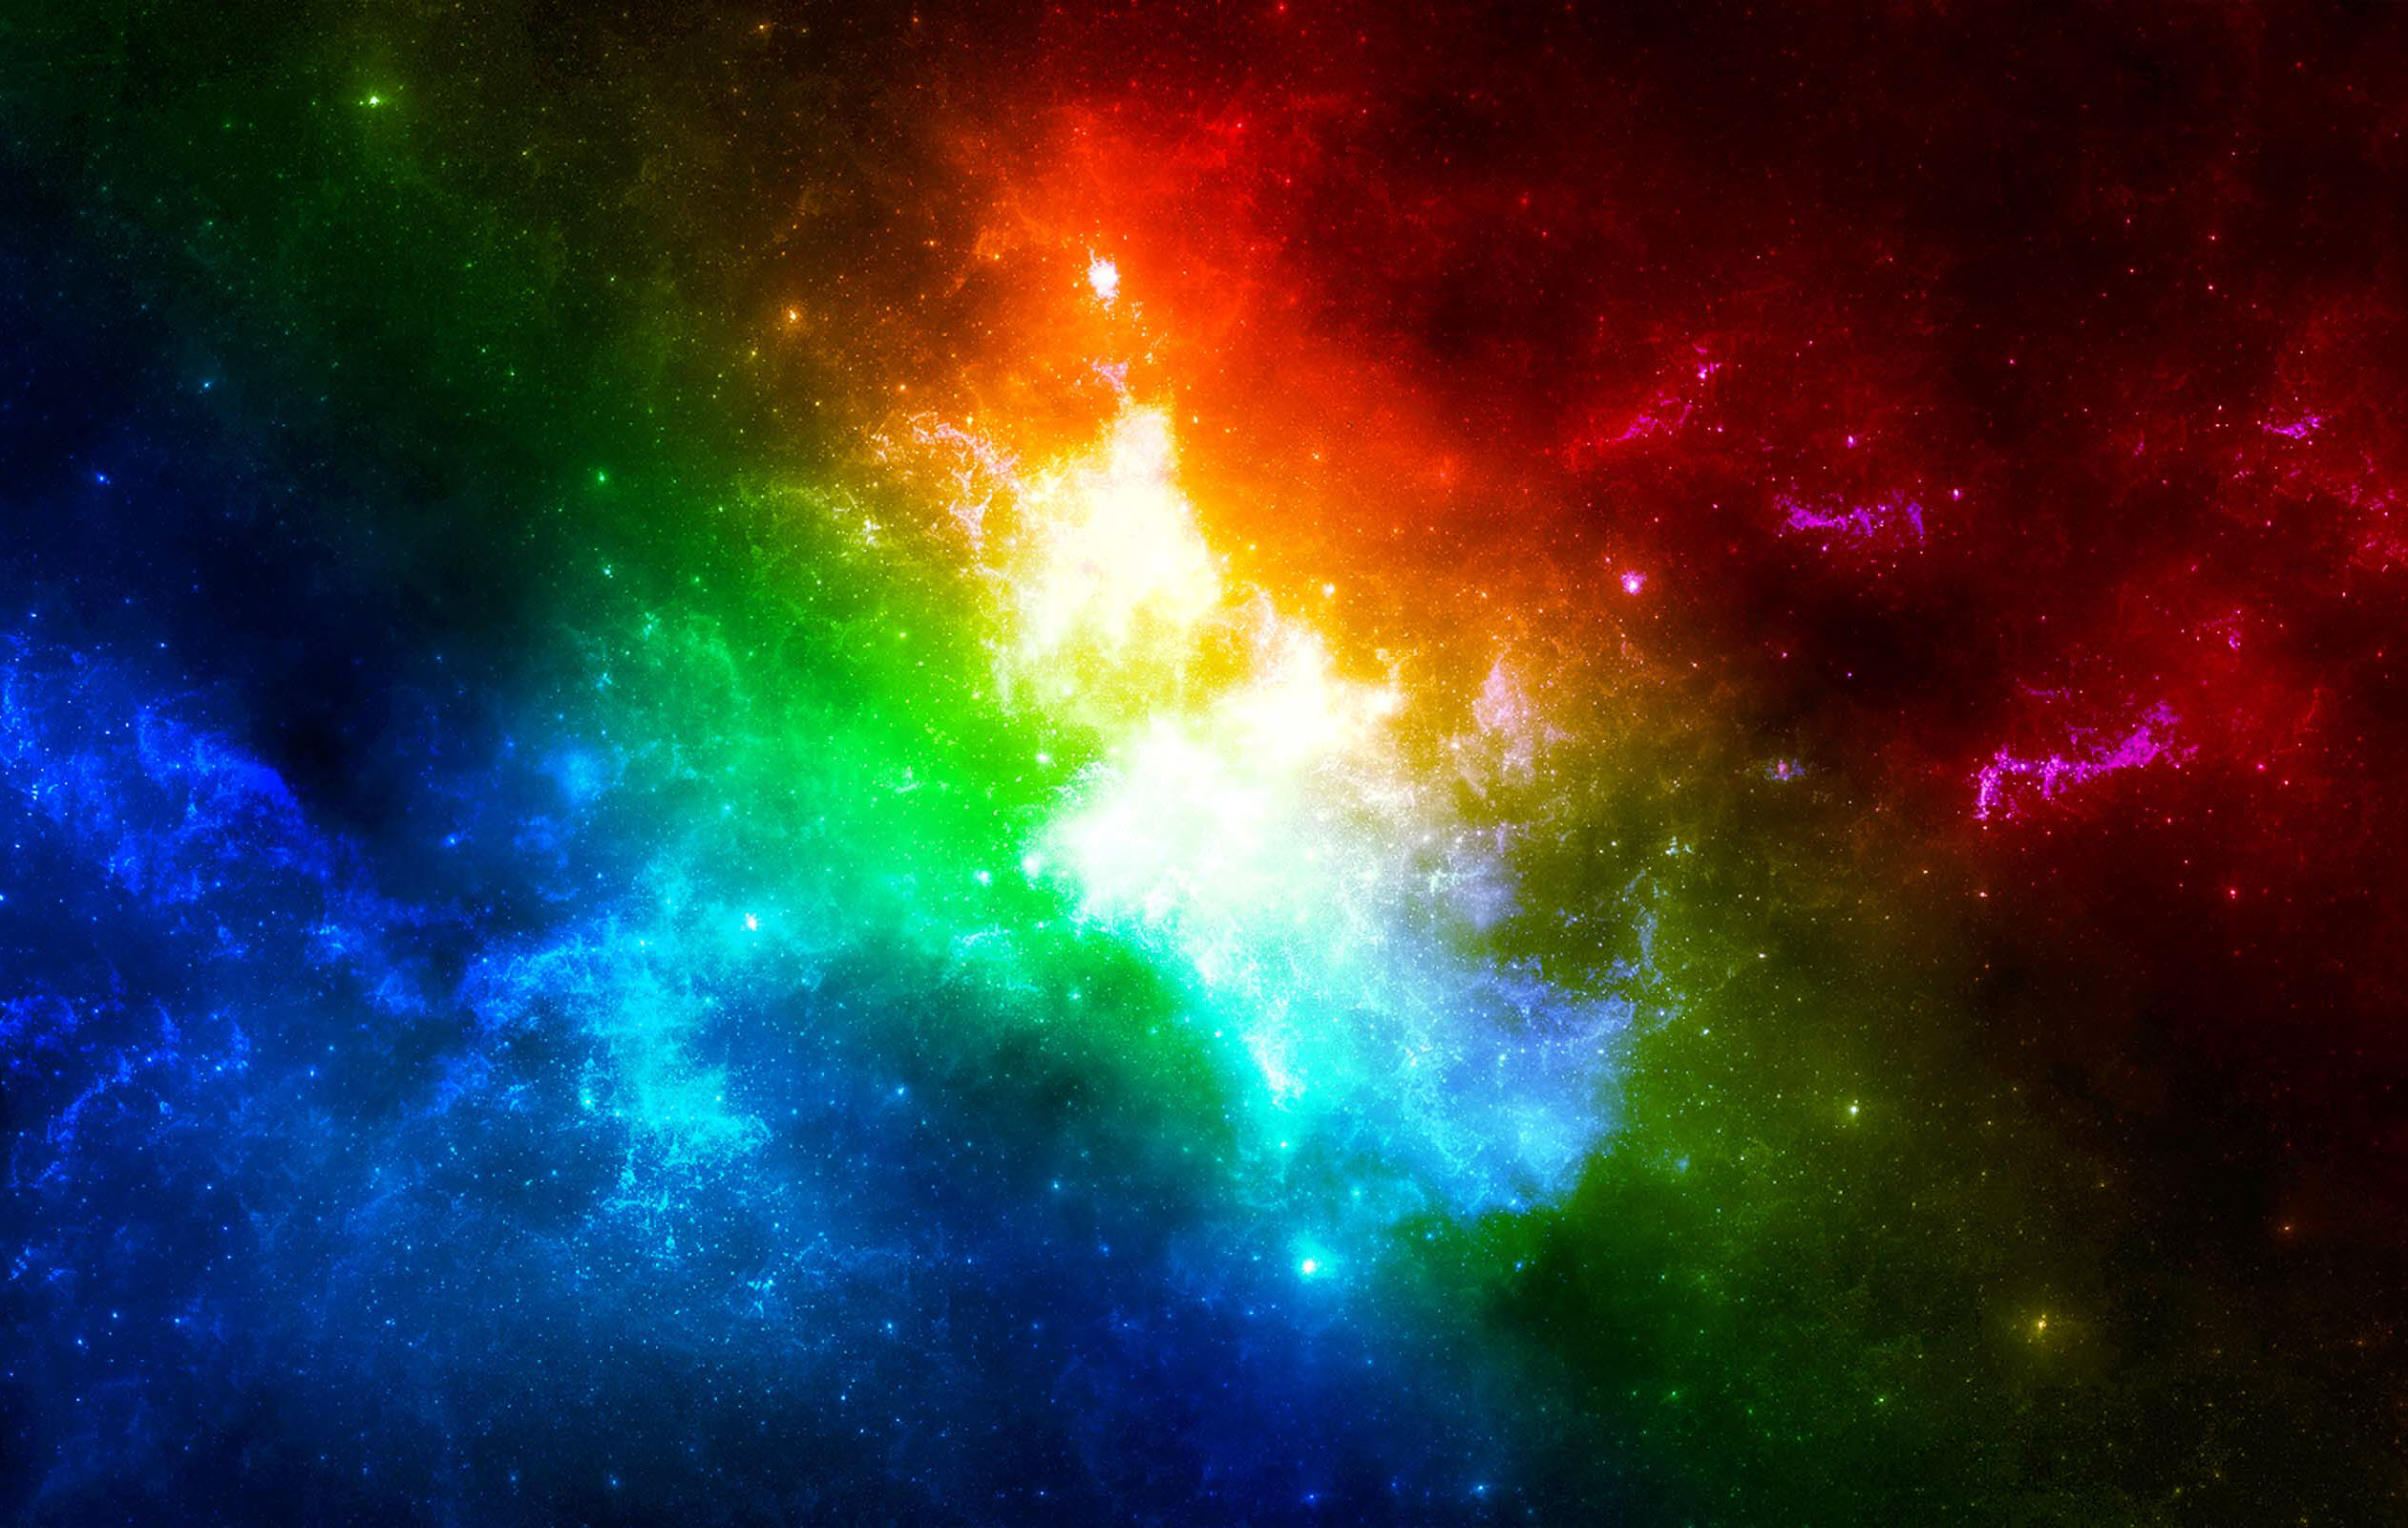 Colorful galaxy wallpaper